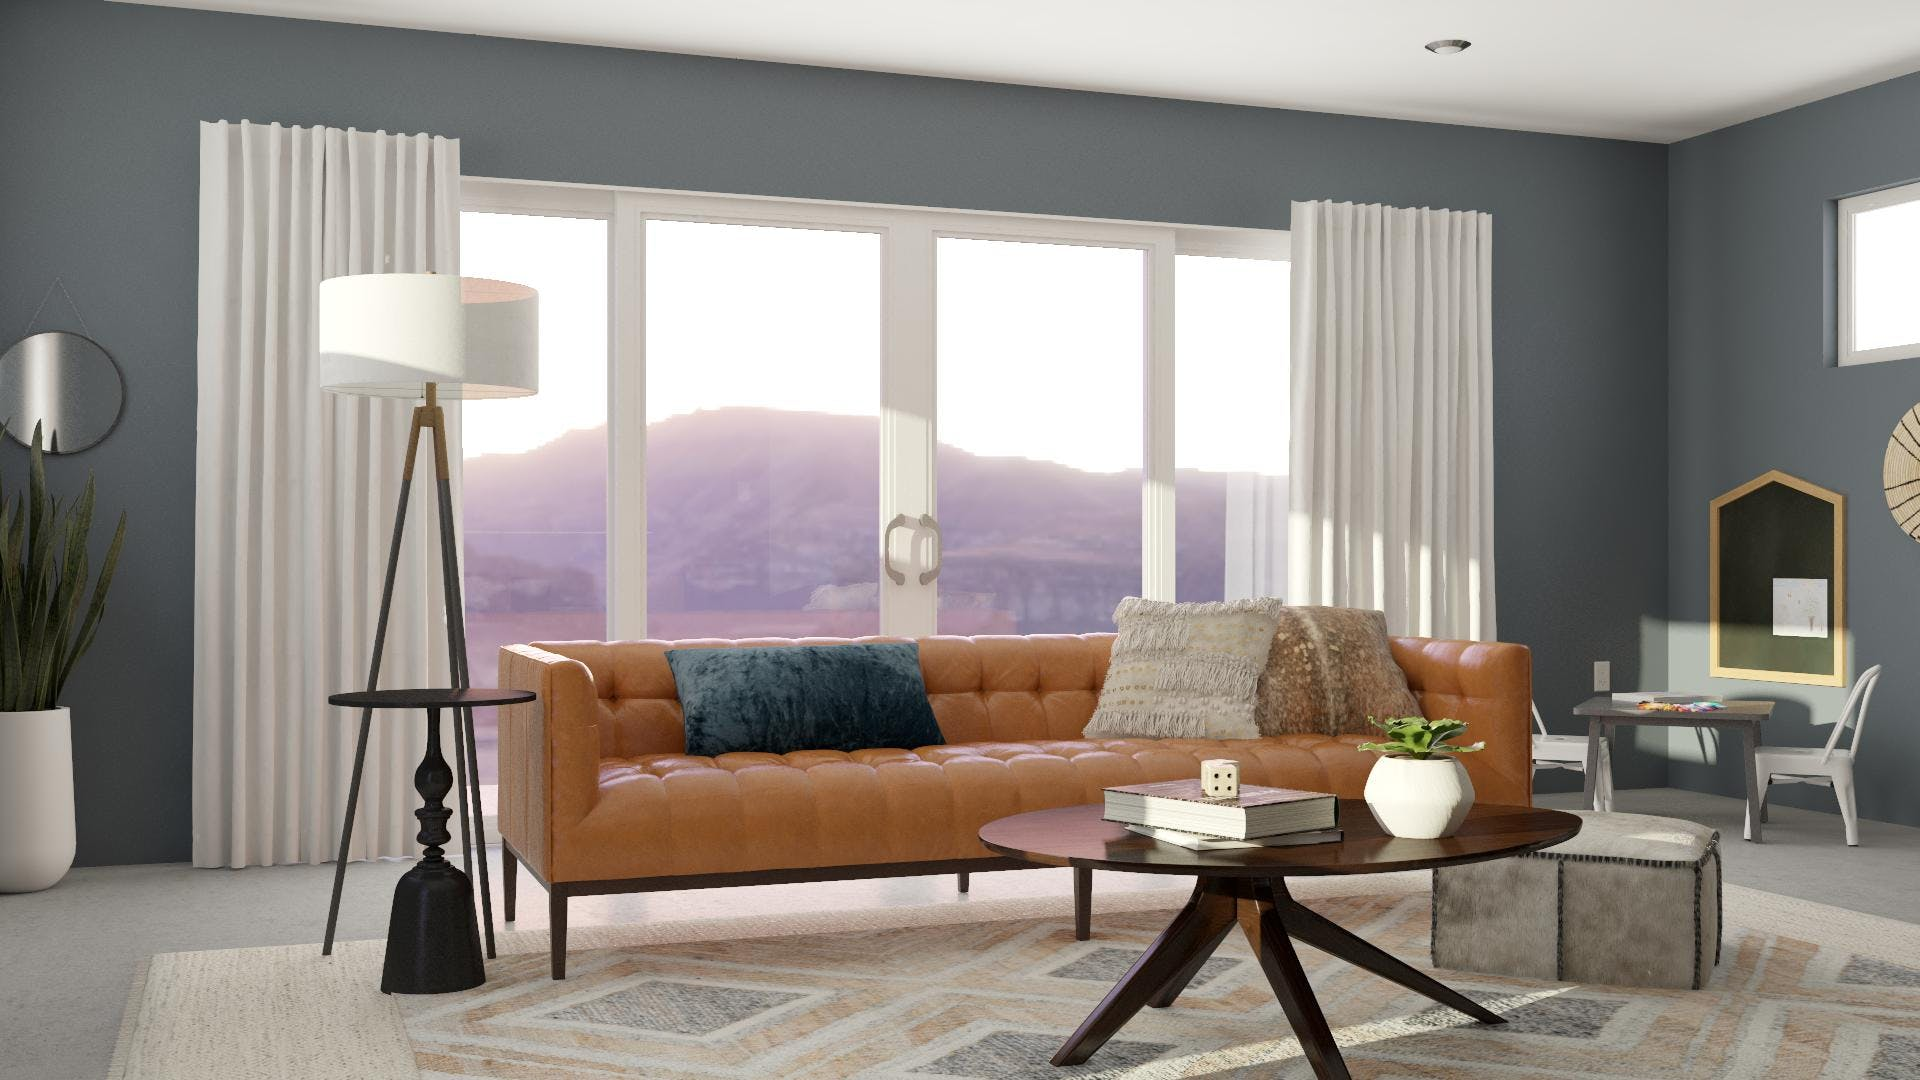 Sleek Contemporary Living Room With Space For Kids